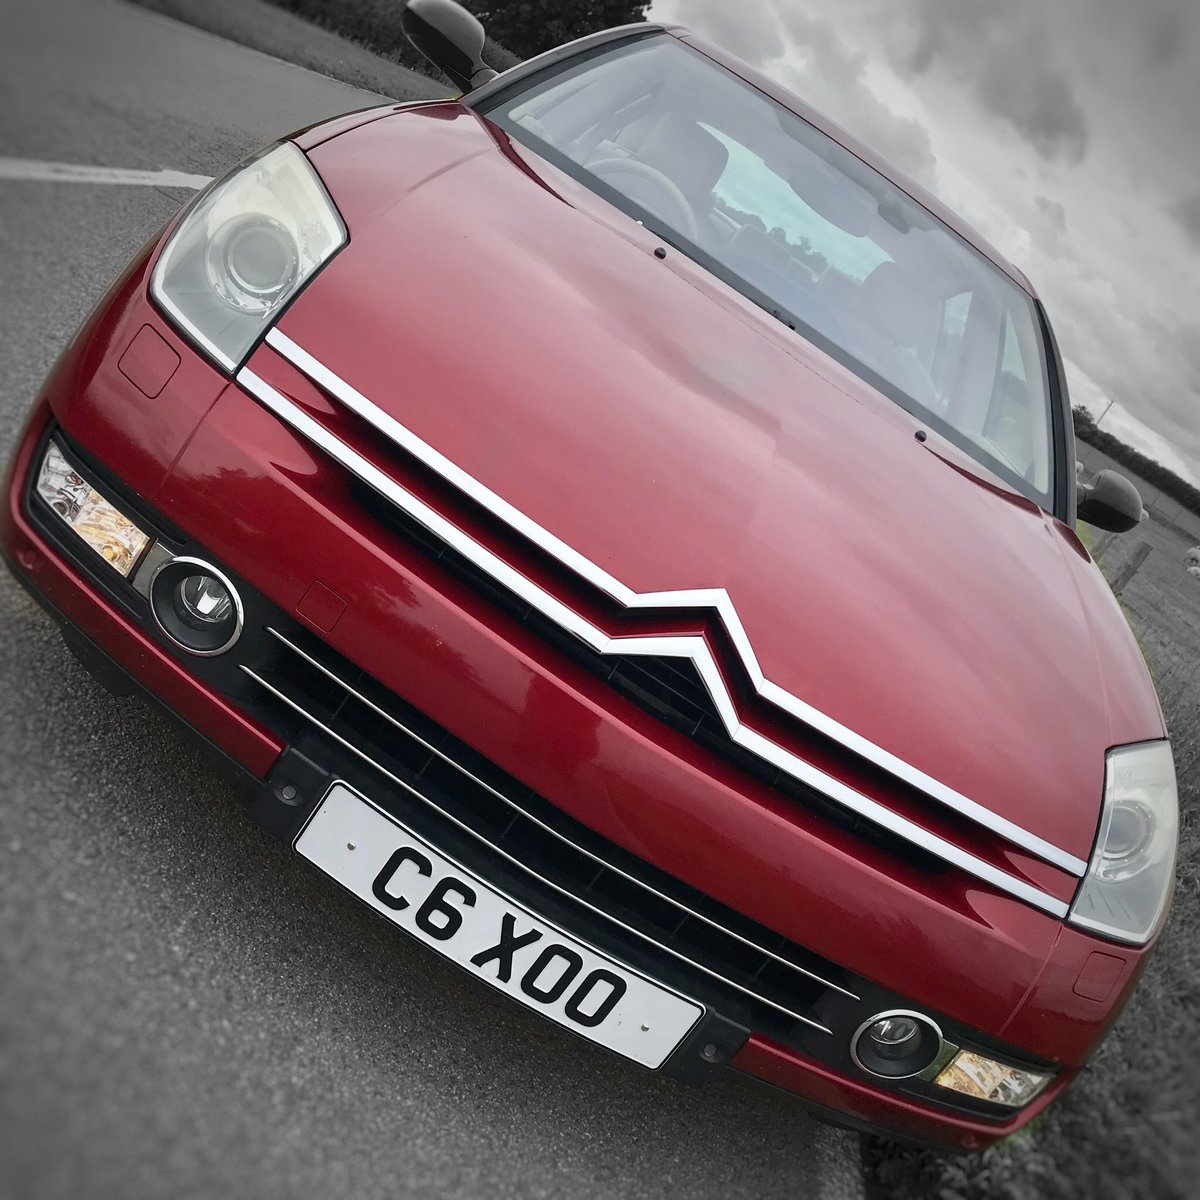 2008 Immaculate Citroen C6, FSH, Lounge Pack, Ultra Low Mileage SOLD (picture 1 of 6)